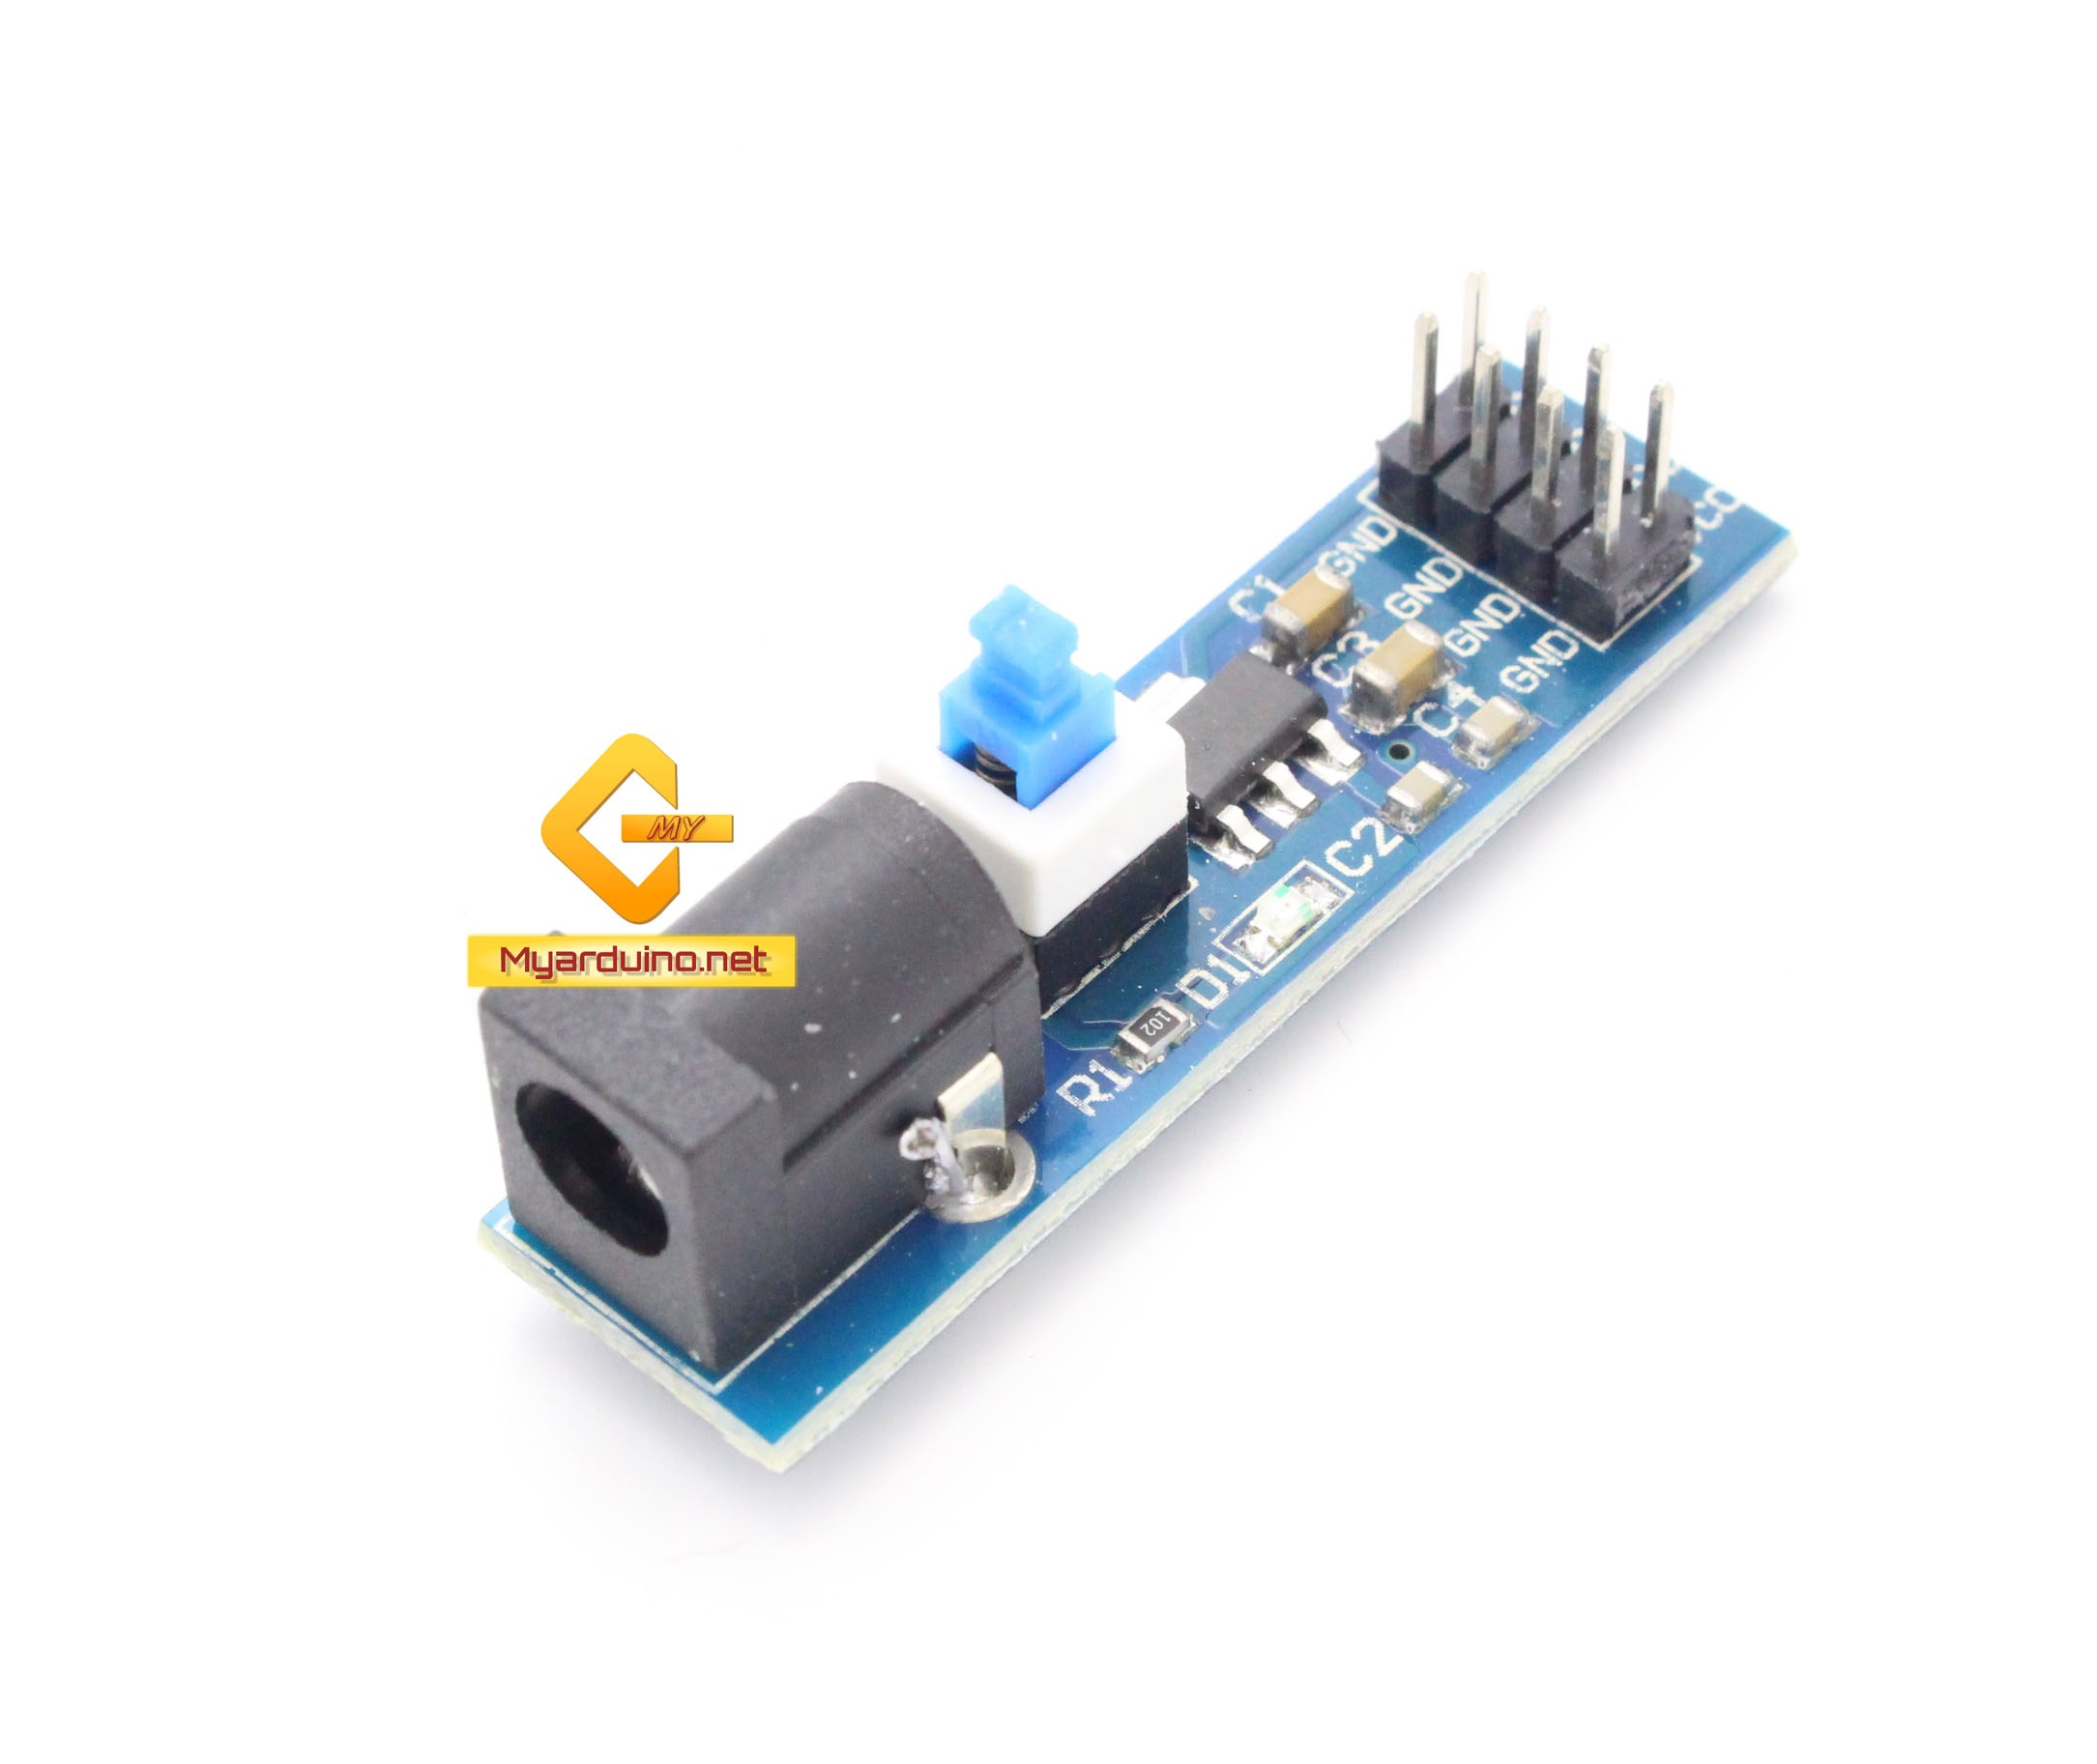 AMS1117 3.3V Jack 5.5x2.1mm Power Supply Module with DC Switch